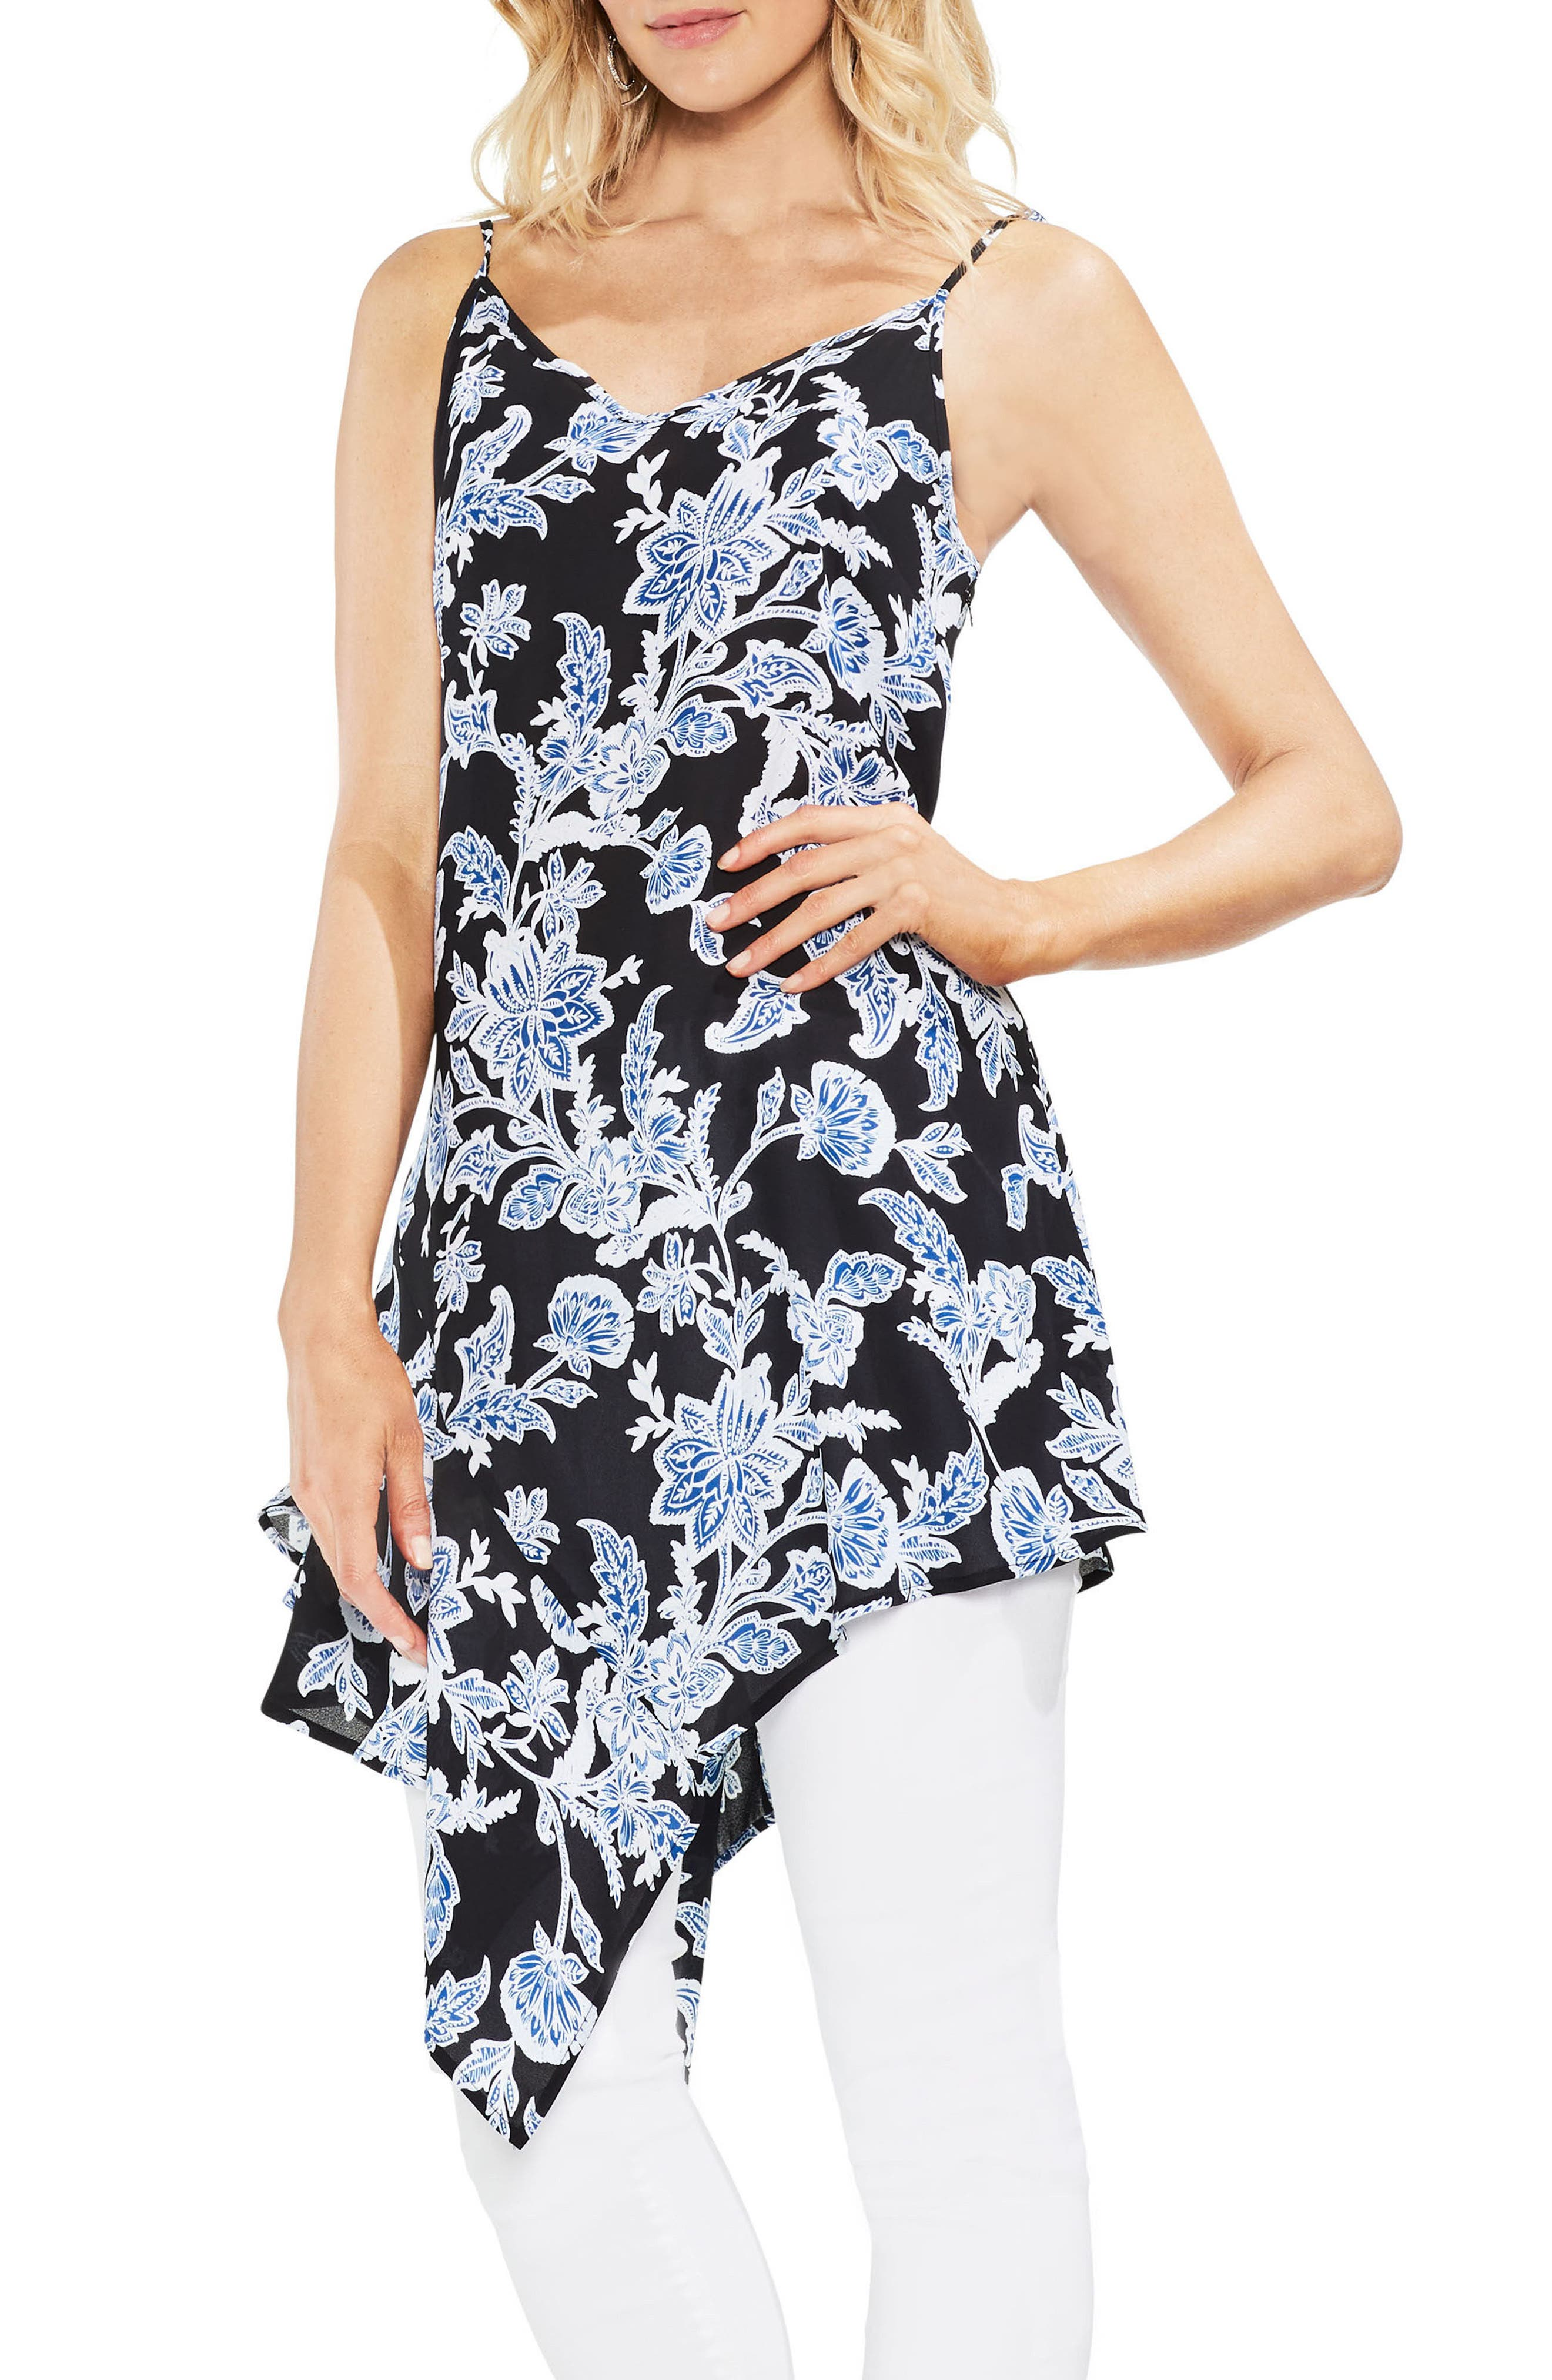 Alternate Image 1 Selected - Vince Camuto Woodblock Floral Asymmetrical Tunic Top